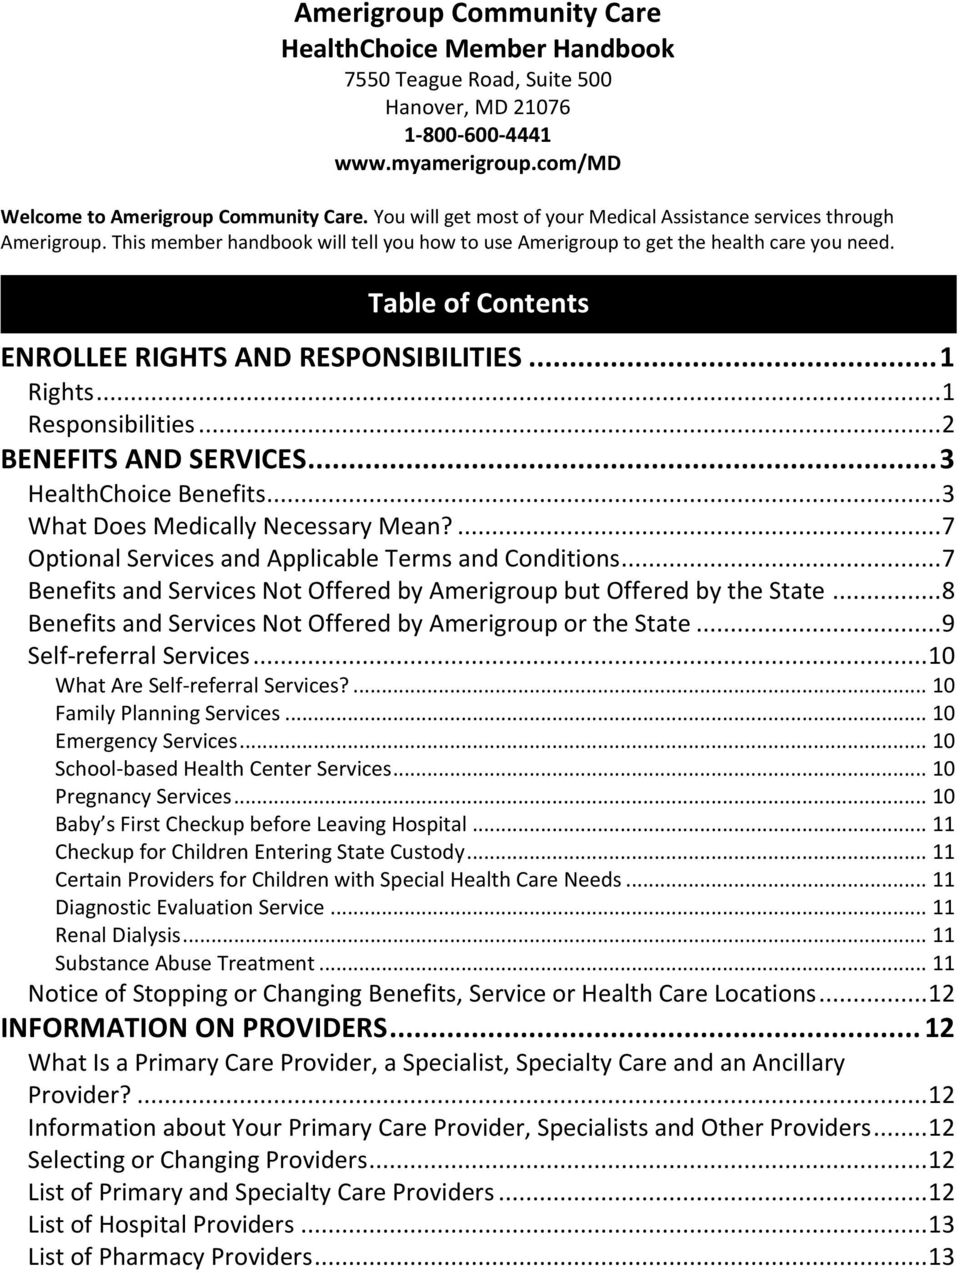 Table of Contents ENROLLEE RIGHTS AND RESPONSIBILITIES... 1 Rights... 1 Responsibilities... 2 BENEFITS AND SERVICES... 3 HealthChoice Benefits... 3 What Does Medically Necessary Mean?